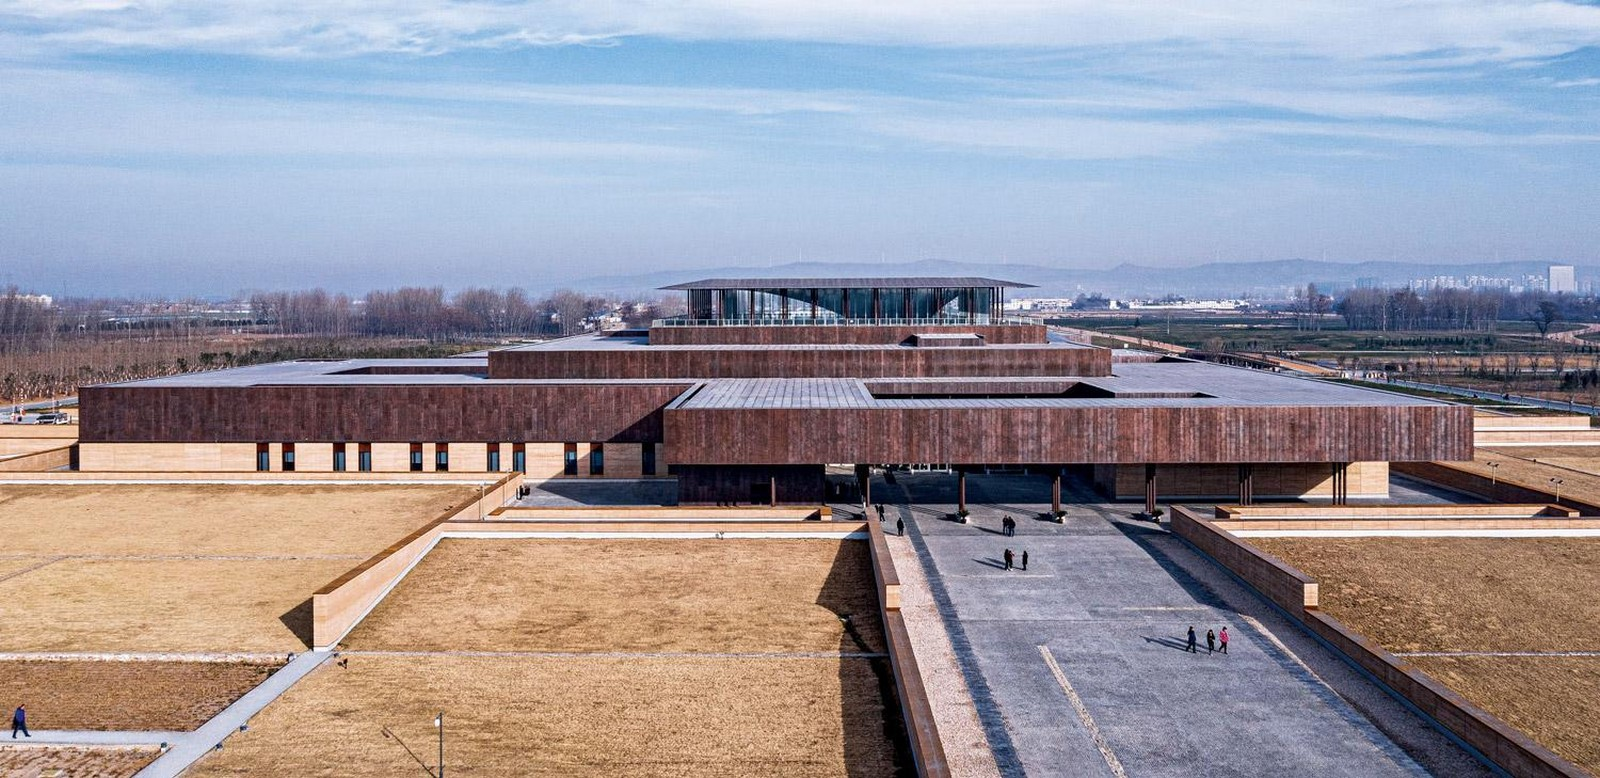 Erlitou Site Museum of the Xia Capital by TJAD and Rurban Studio: Preserving the existing - Sheet4